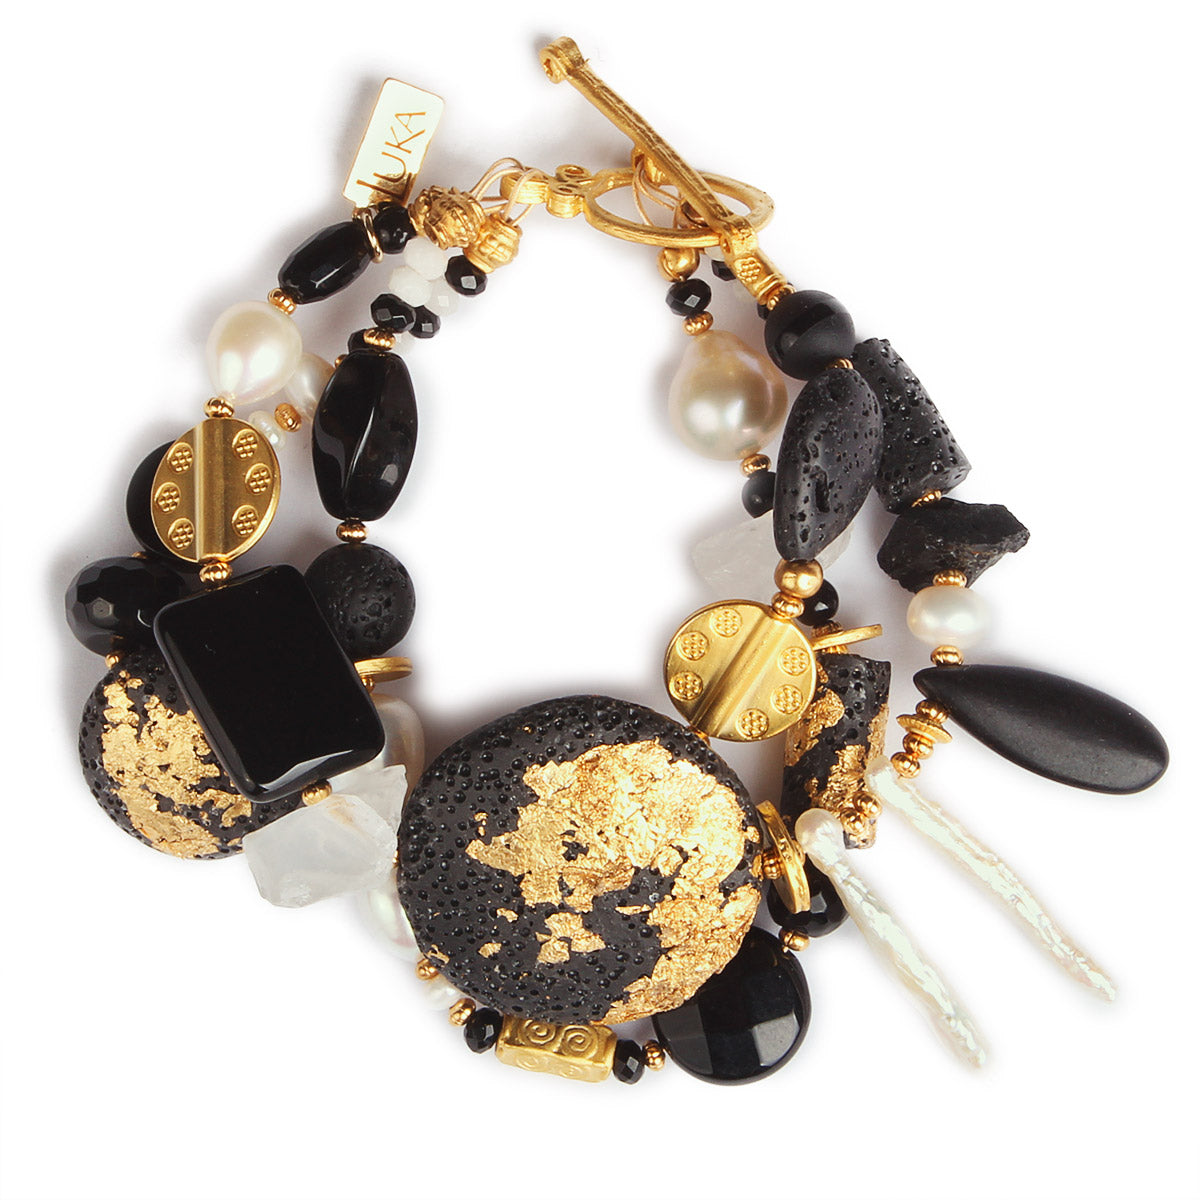 N°487 The Benign Black & White Stone Addiction Statement Bracelet